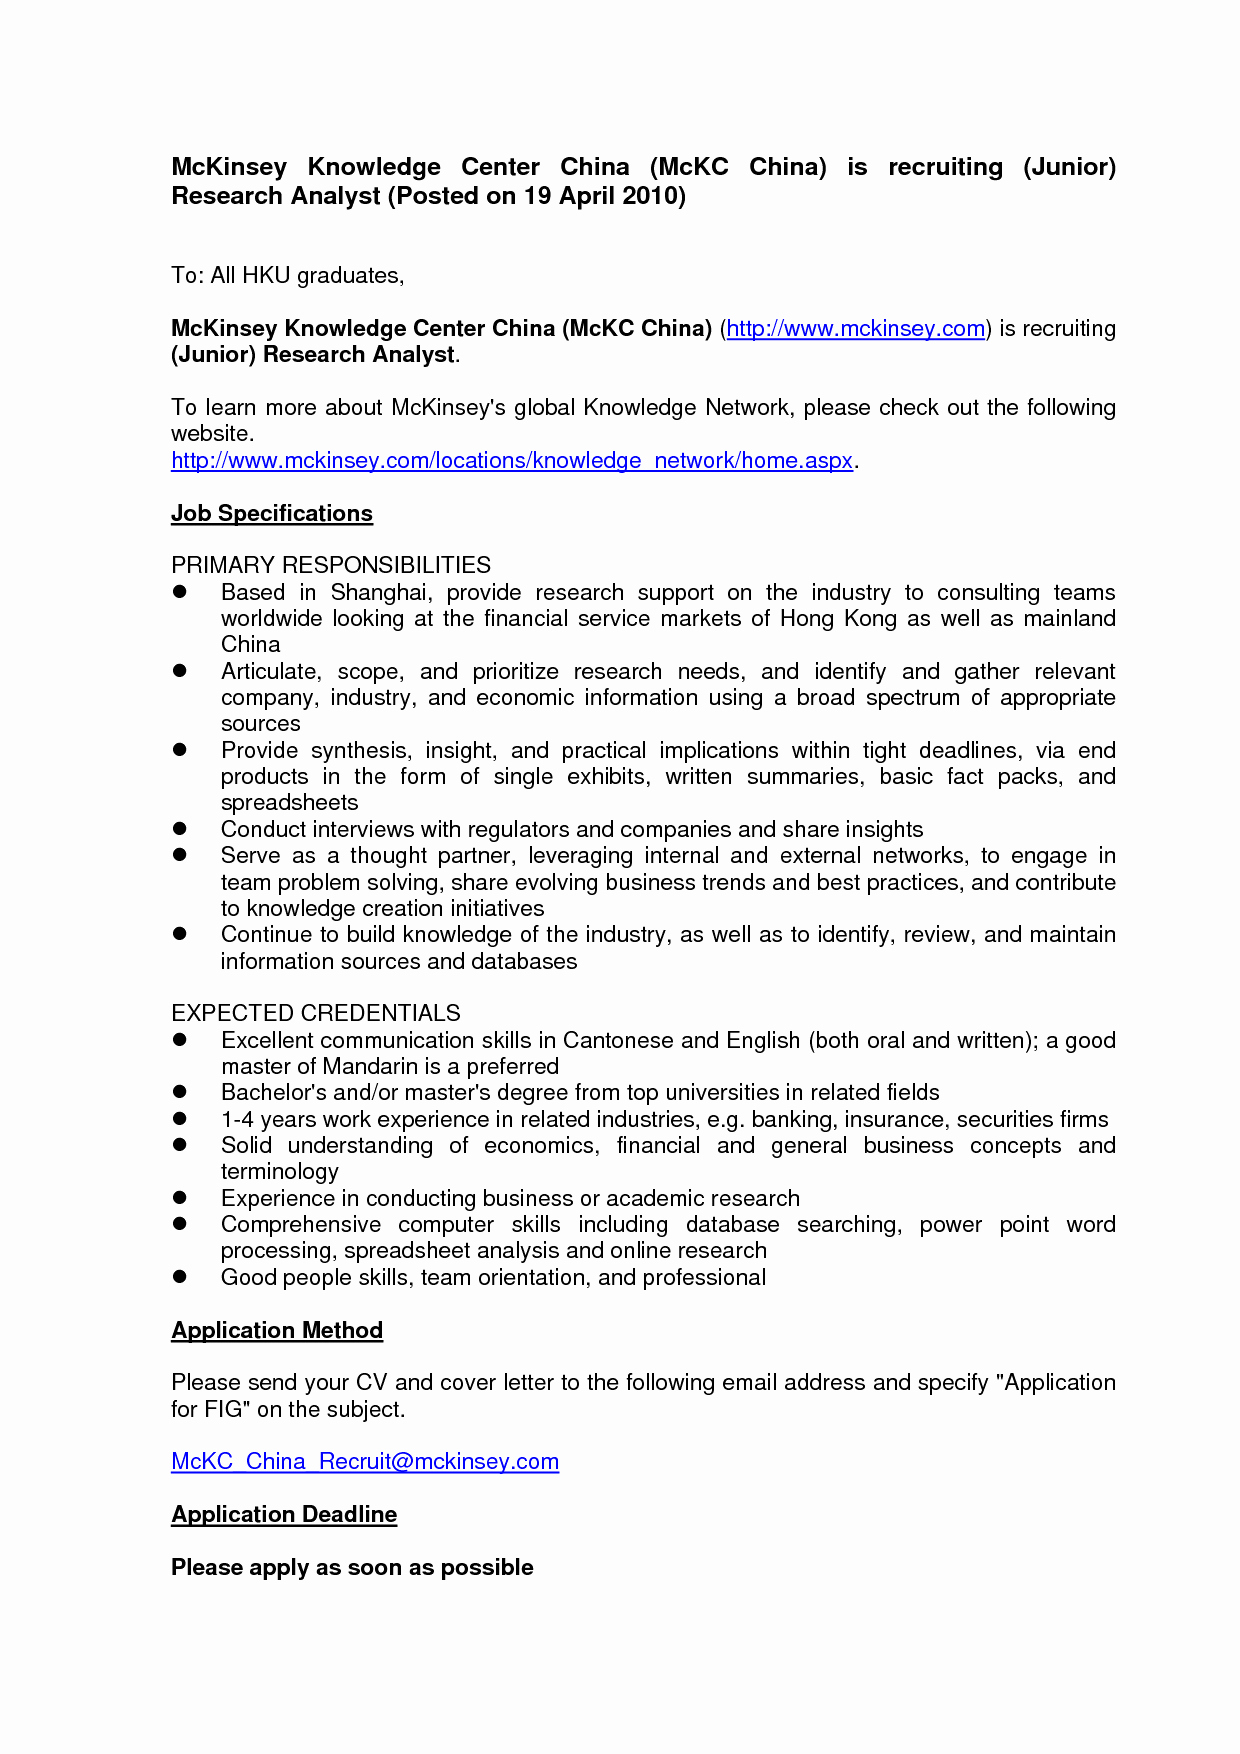 Hr Cover Letter Template - How to Address Cover Letter to Hr New Resume Cover Letter Template